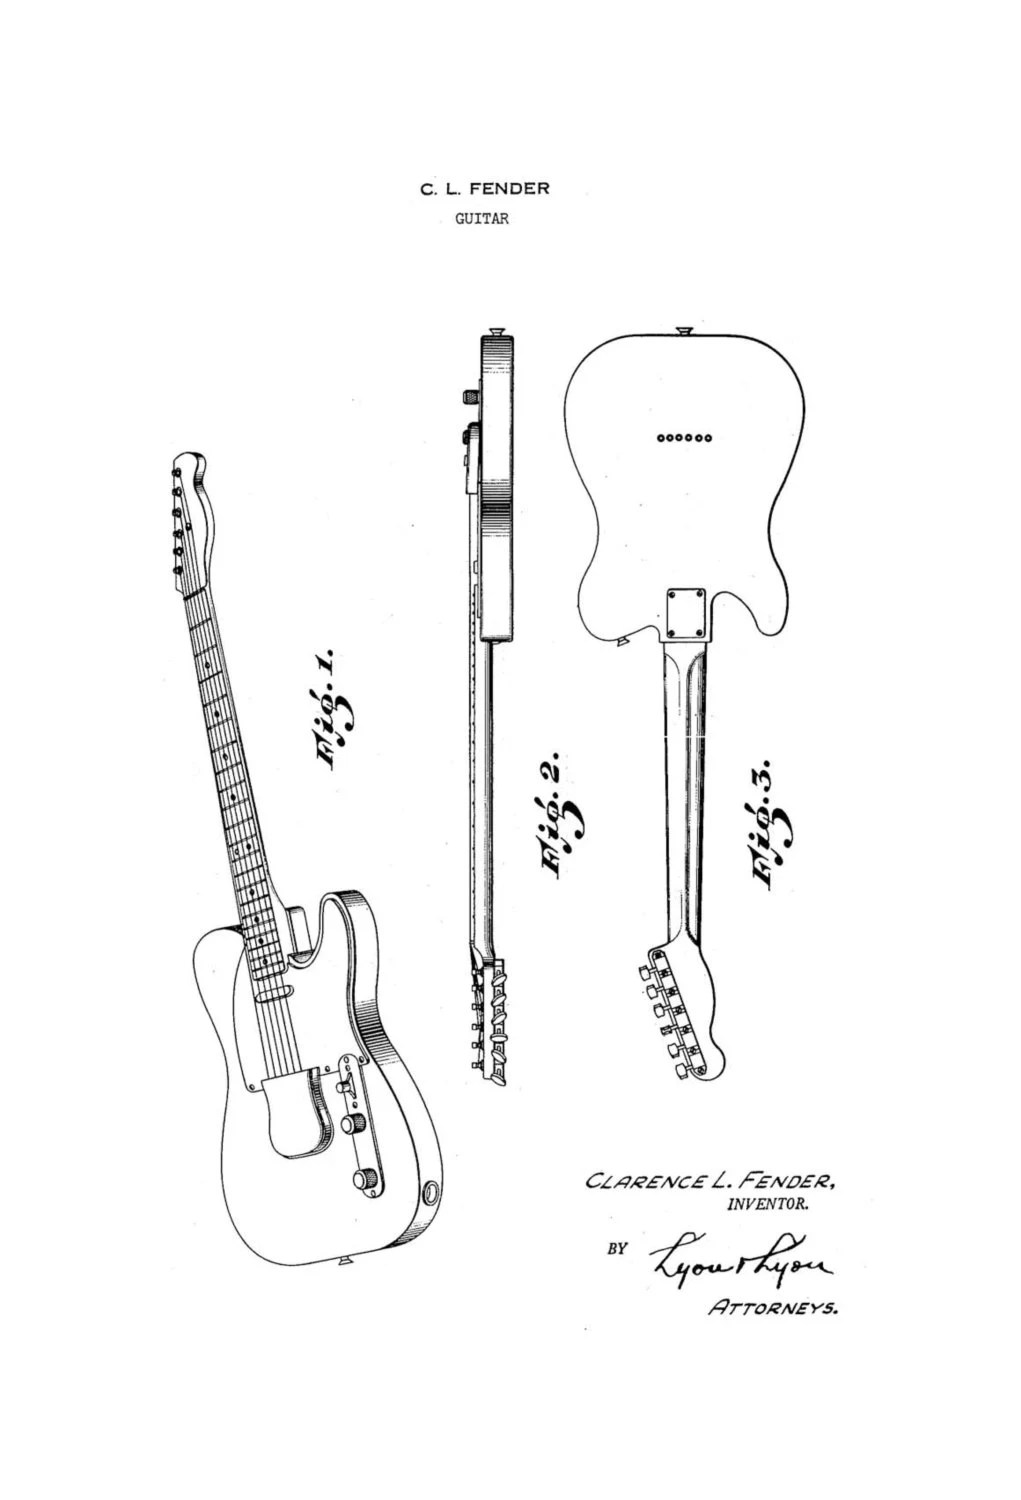 Gibson Les Paul Electric Guitar 1950's Patent Art Drawing